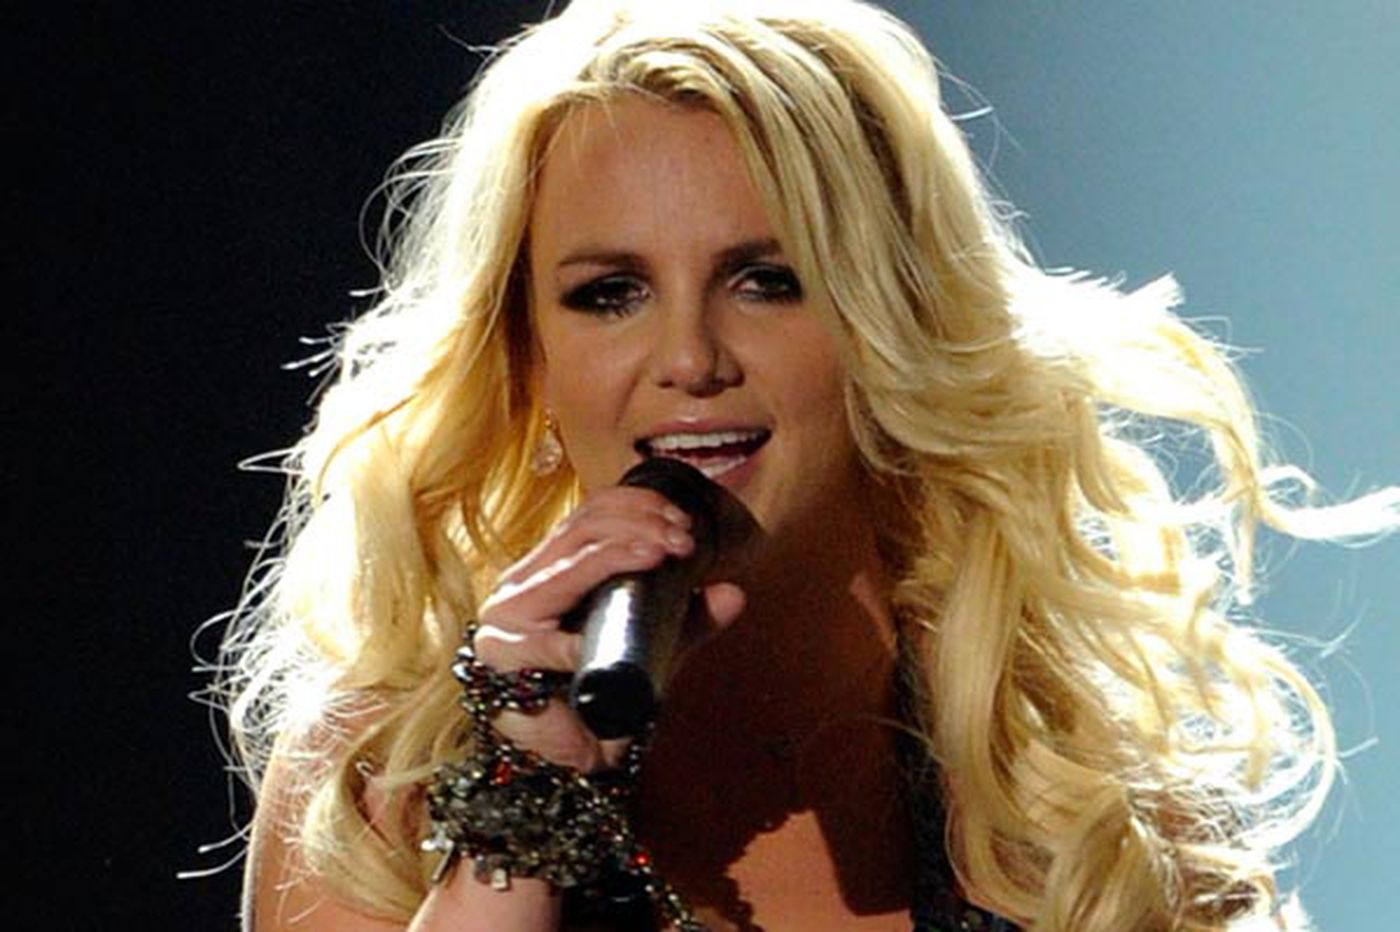 In karmic retribution, piracy is a victim of Britney